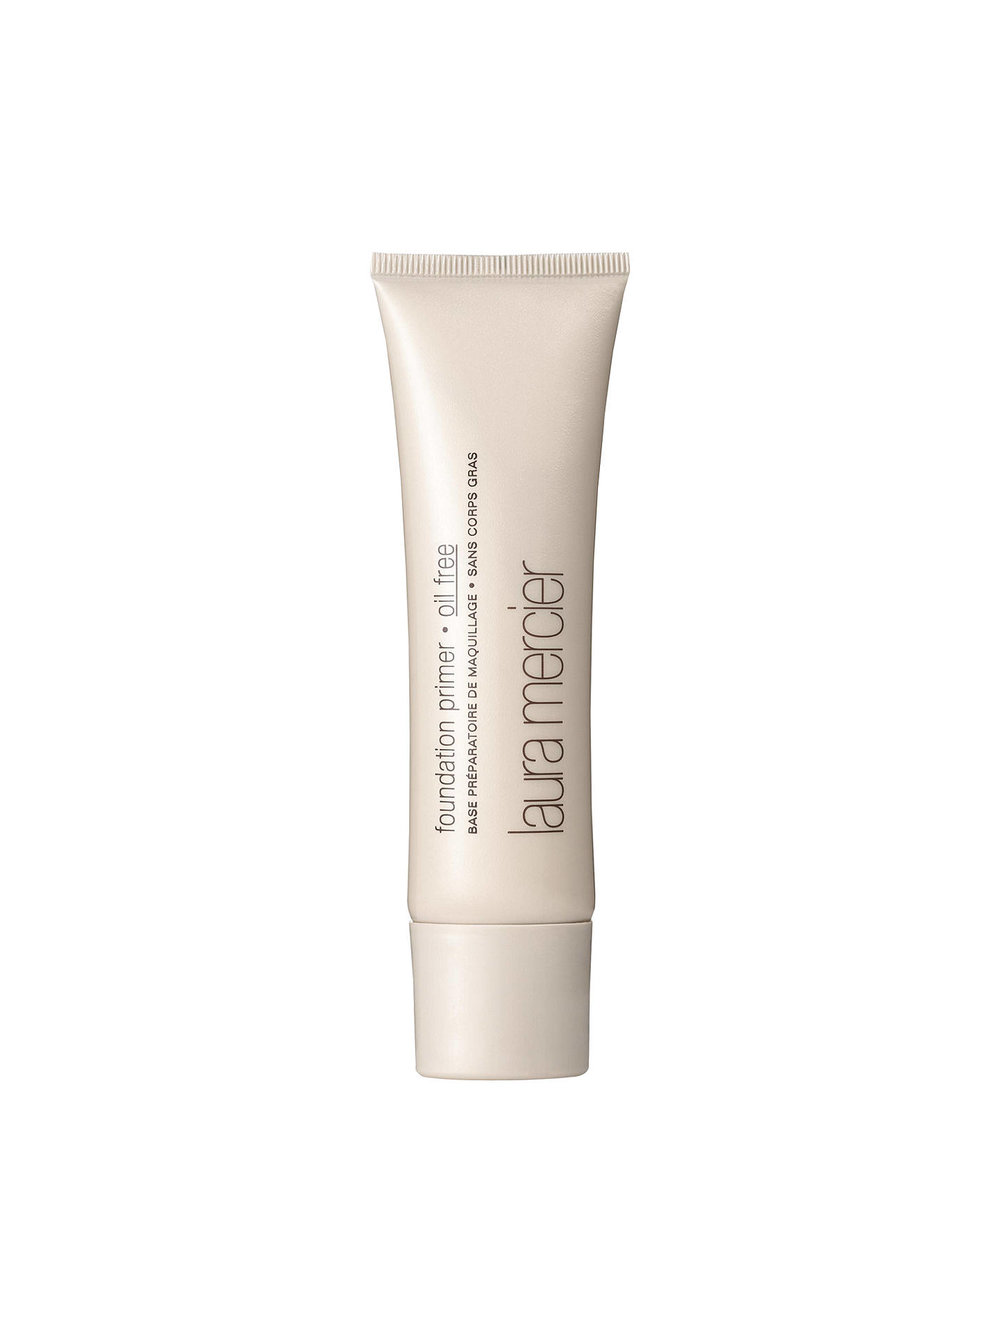 Laura Mercier Oil-Free Primer - One of my summer impulse-buys, this product finally got me into primer. Normally, I think primer is a gimmick; Benefit's Porefessional and Tarte's Poreless Primer were too much dimethicone for my liking. But this is a lightweight, gel-based, vitamin-infused primer that creates a natural and dewy complexion for foundation. On good skin days, I even opt out of foundation and wear the primer as an illuminating base.Image Via